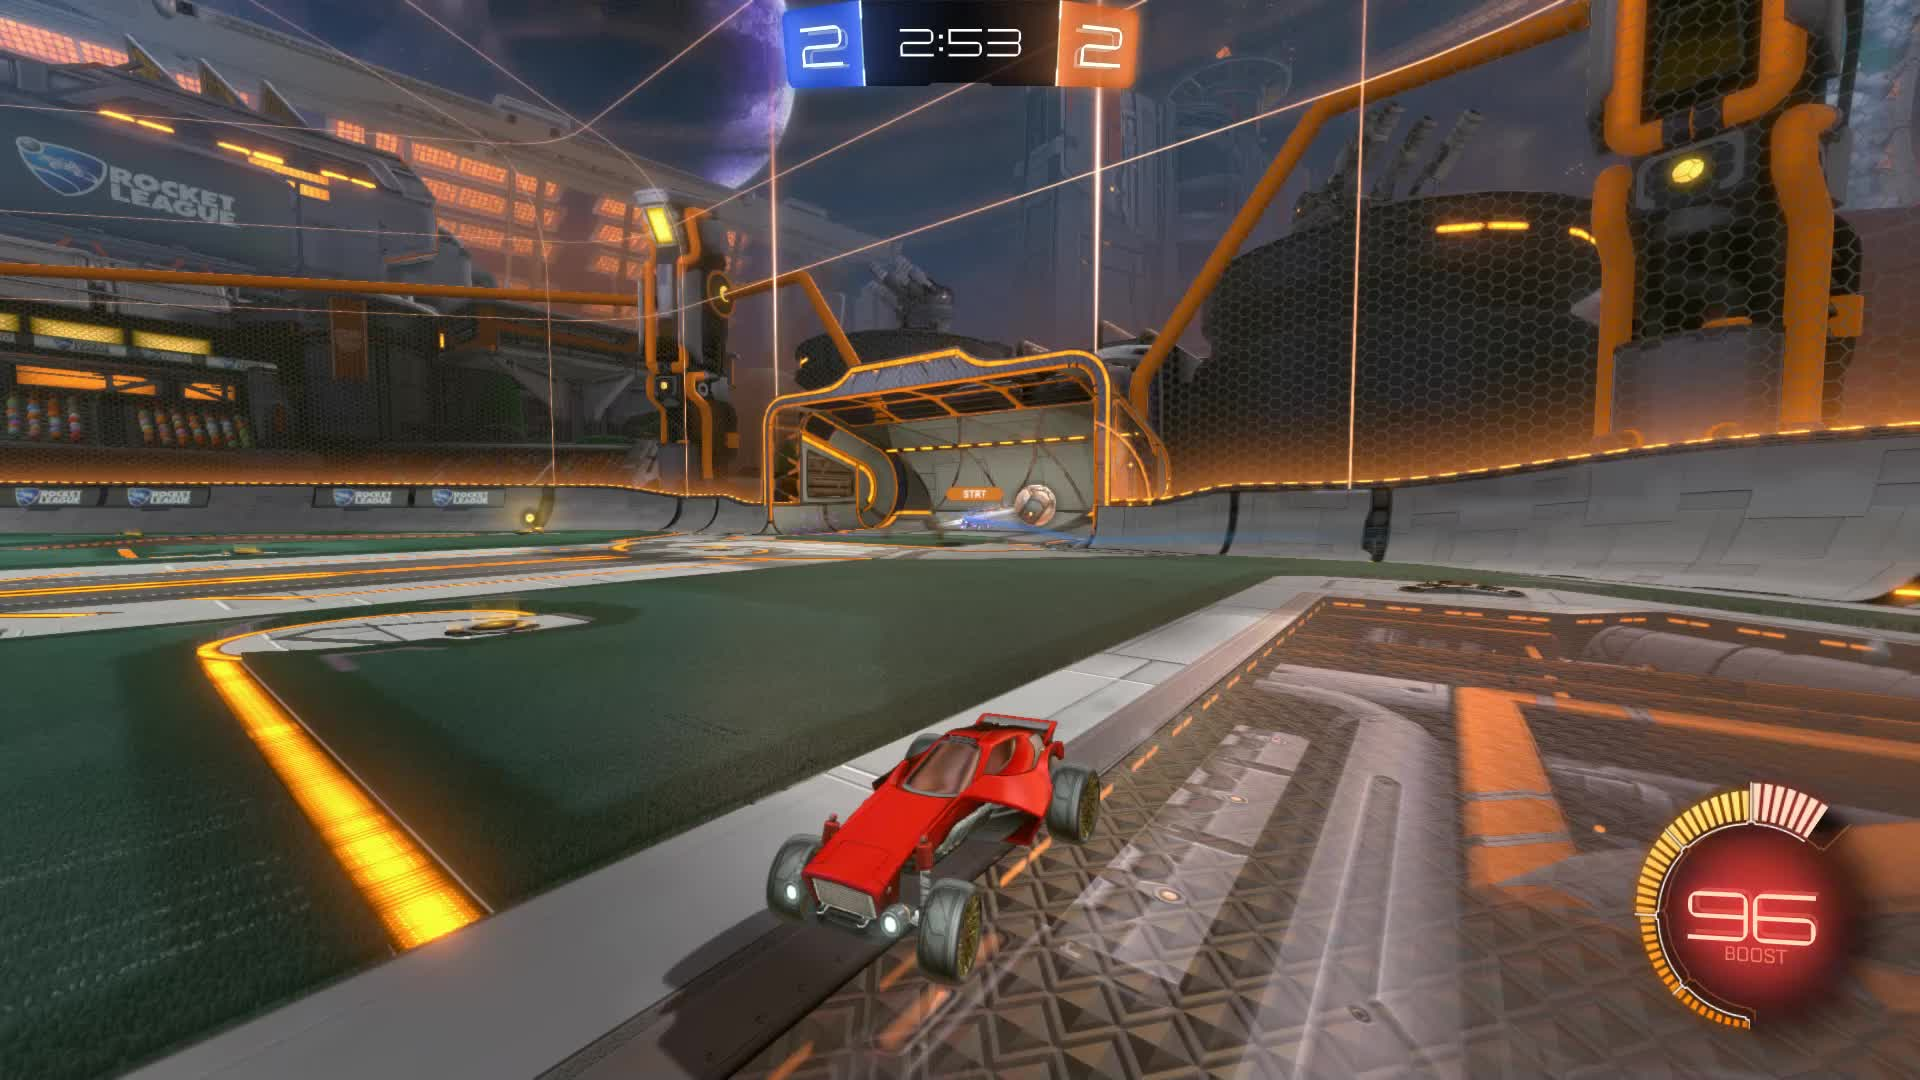 Assist, Gif Your Game, GifYourGame, JAG, Rocket League, RocketLeague, Assist 2: JAG GIFs